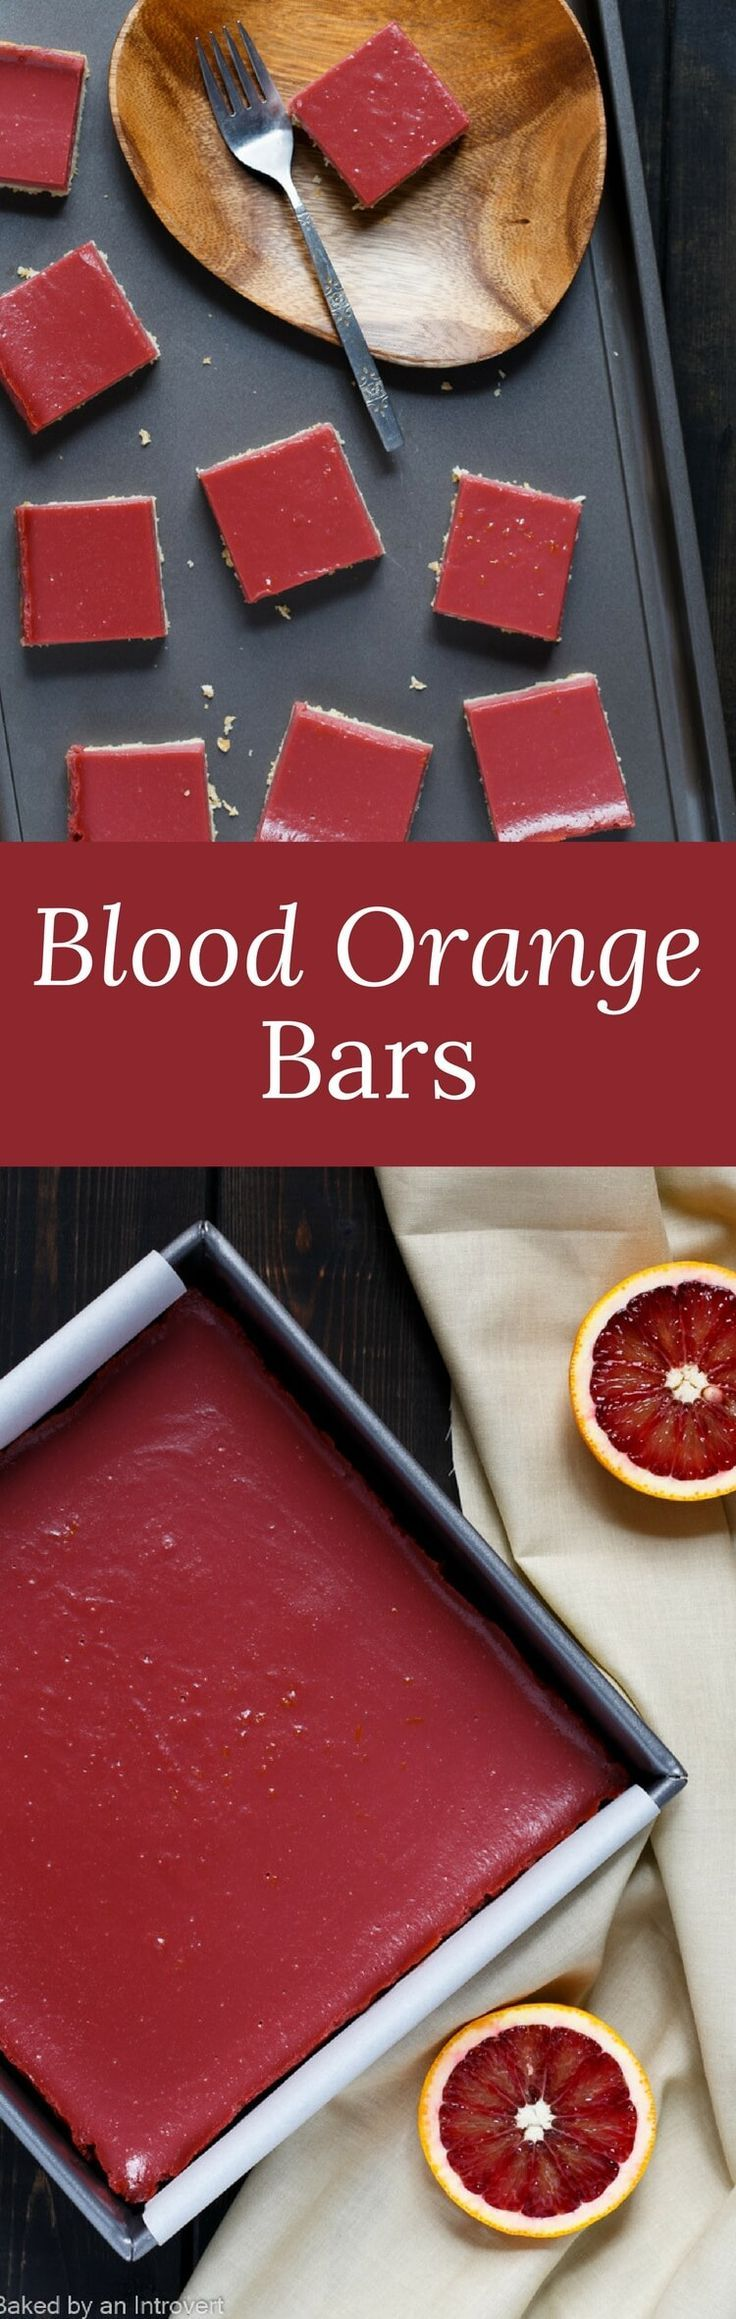 Blood Orange Bars are a less tangy version of lemon bars. They are vibrant, full of orange flavor, and rest on a buttery shortbread crust. via /introvertbaker/